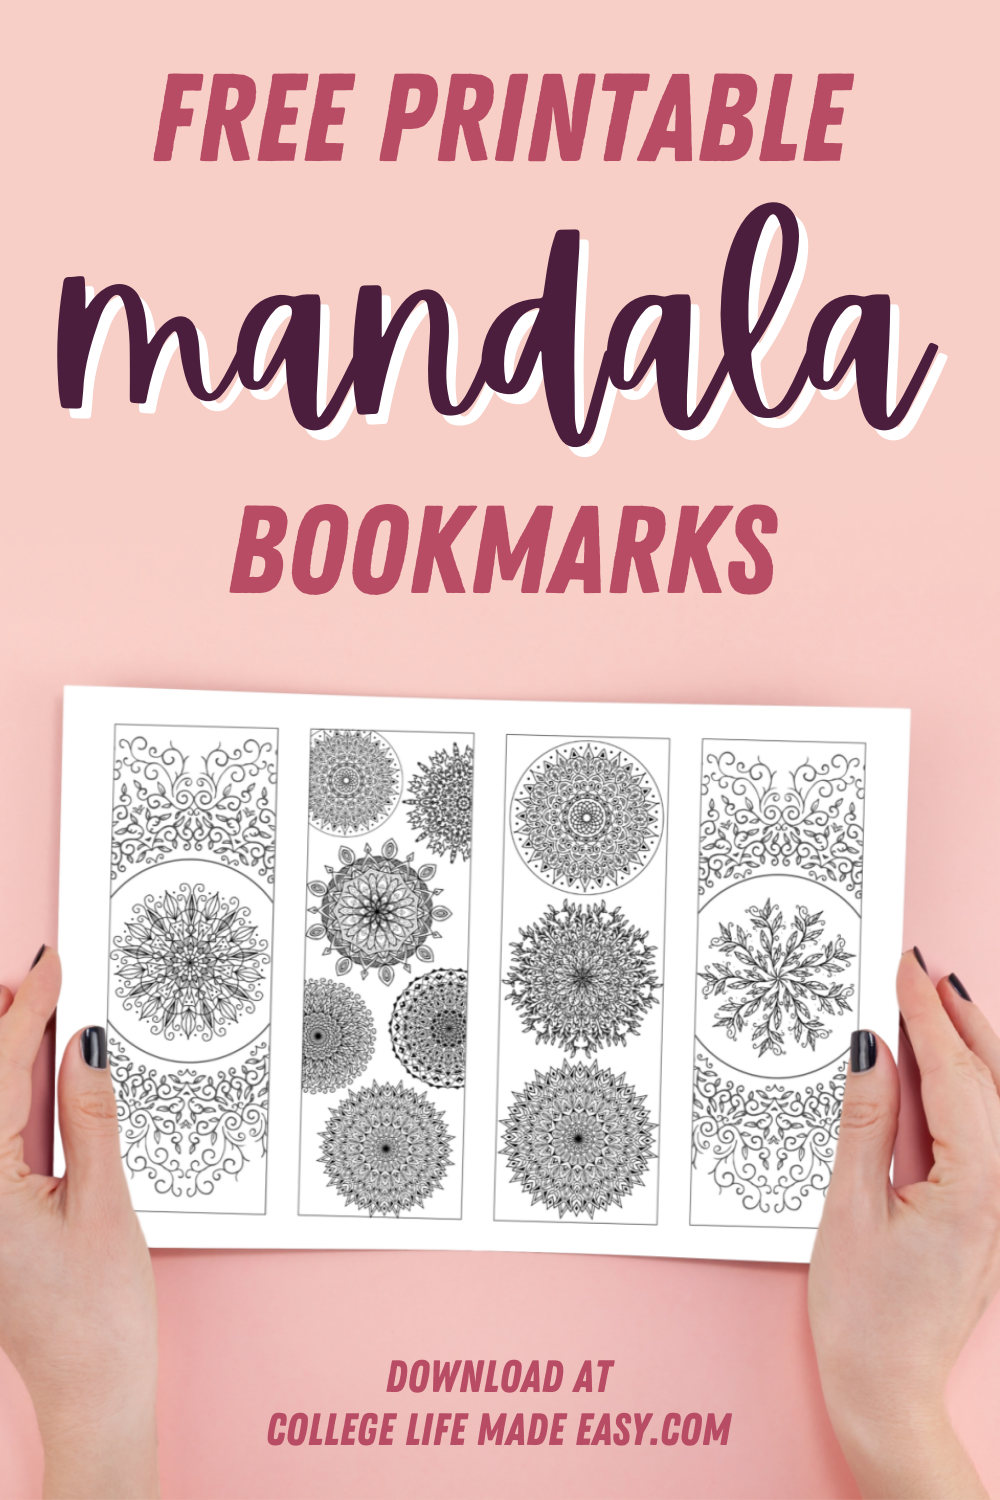 Free Printable Mandala Bookmarks: 8 Floral Inspired Designs to Color 1